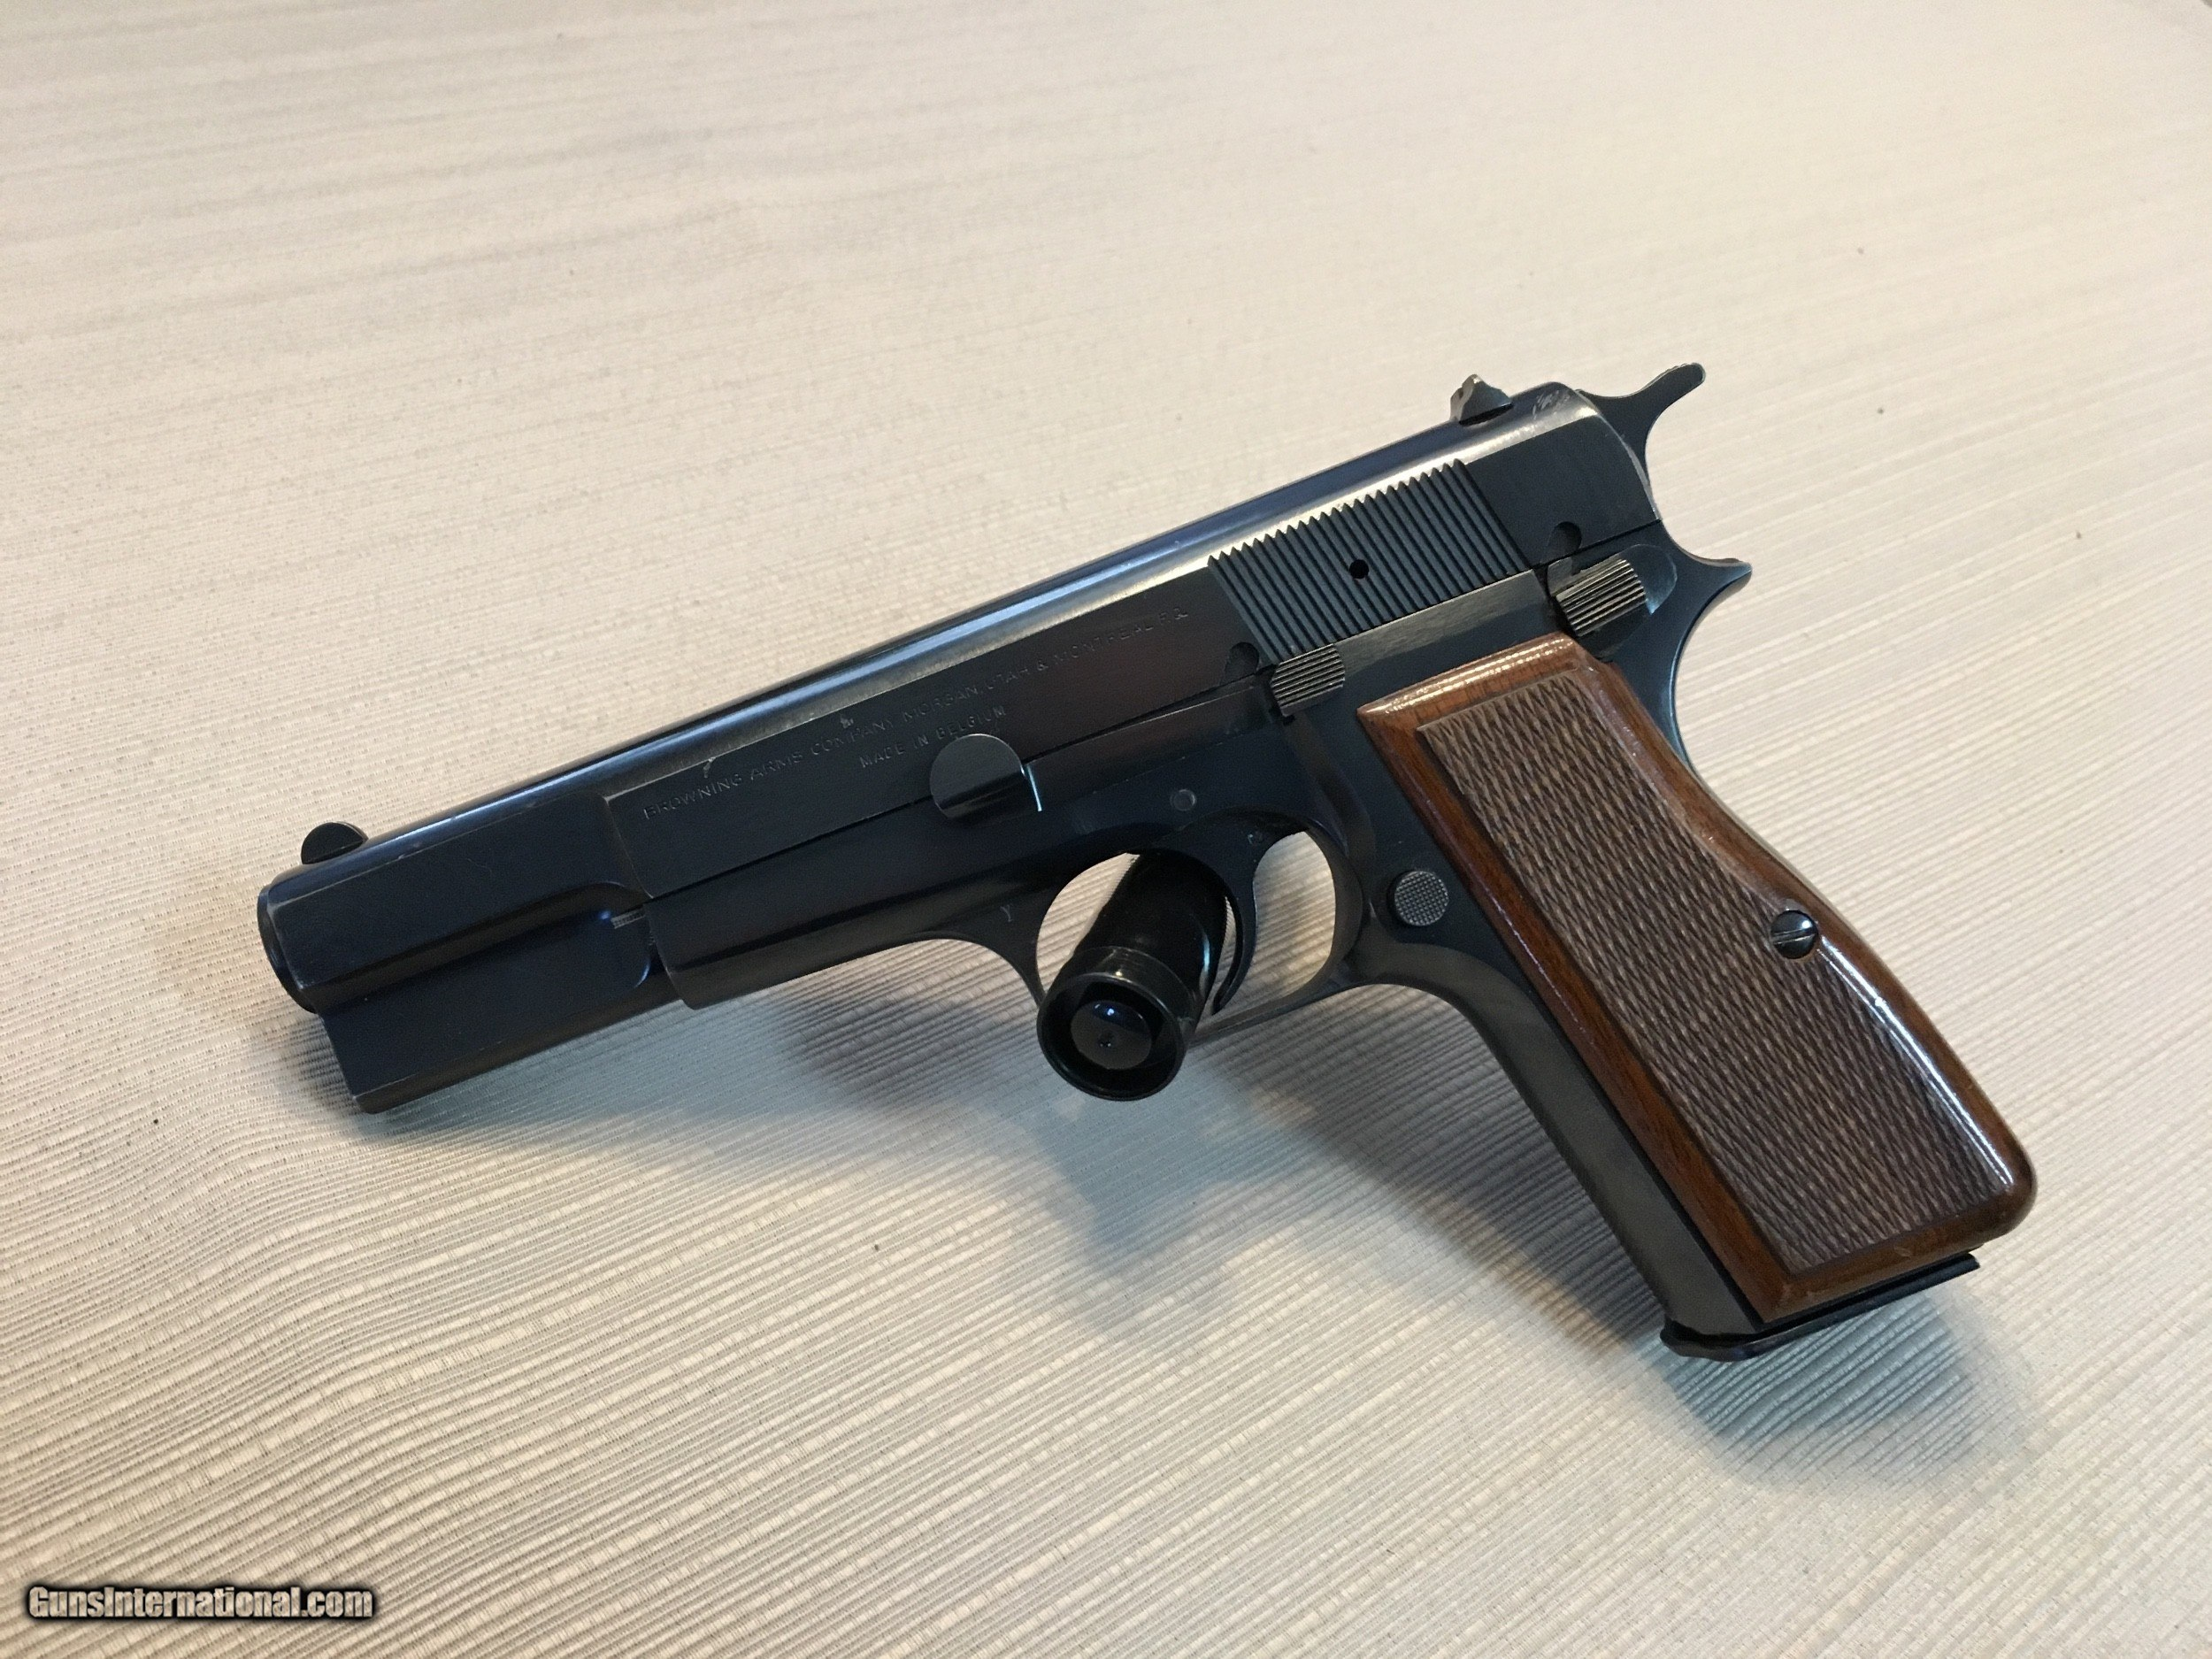 1976 Browning Hi-Power 9mm c series with extras